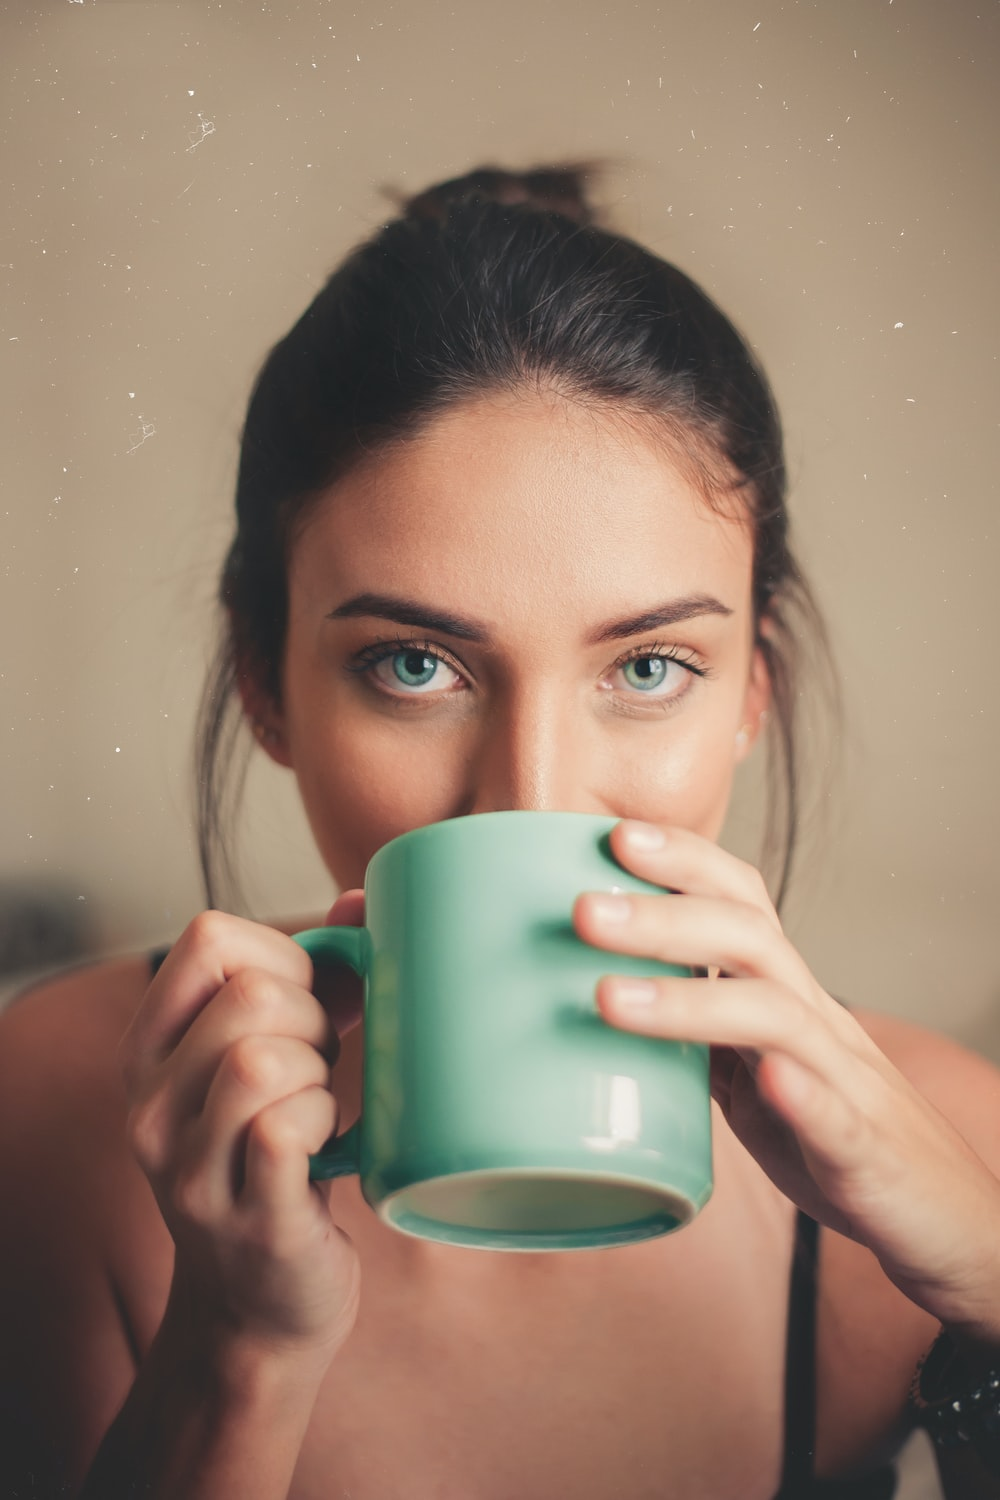 500+ Girl With Coffee Pictures   Download Free Images on Unsplash